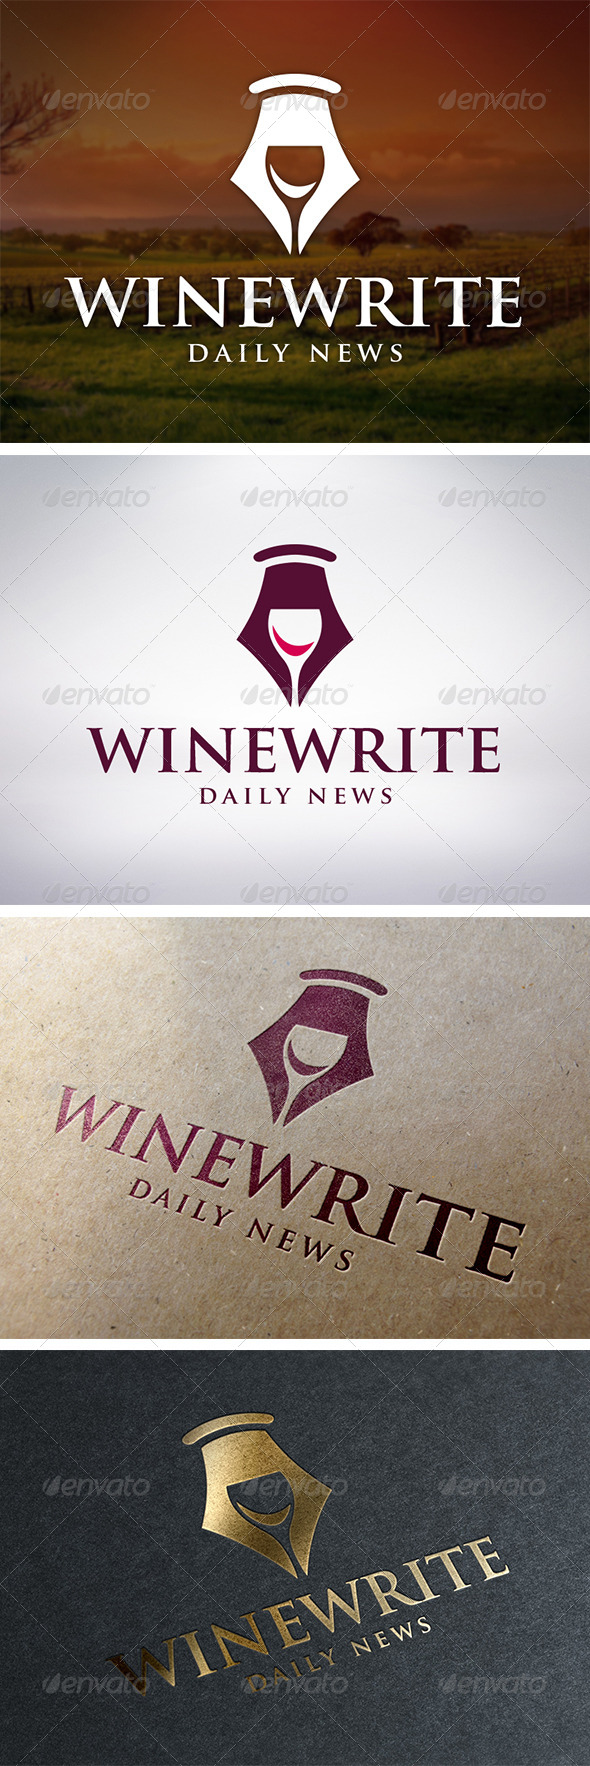 GraphicRiver Wine Writer Logo Template 5913182